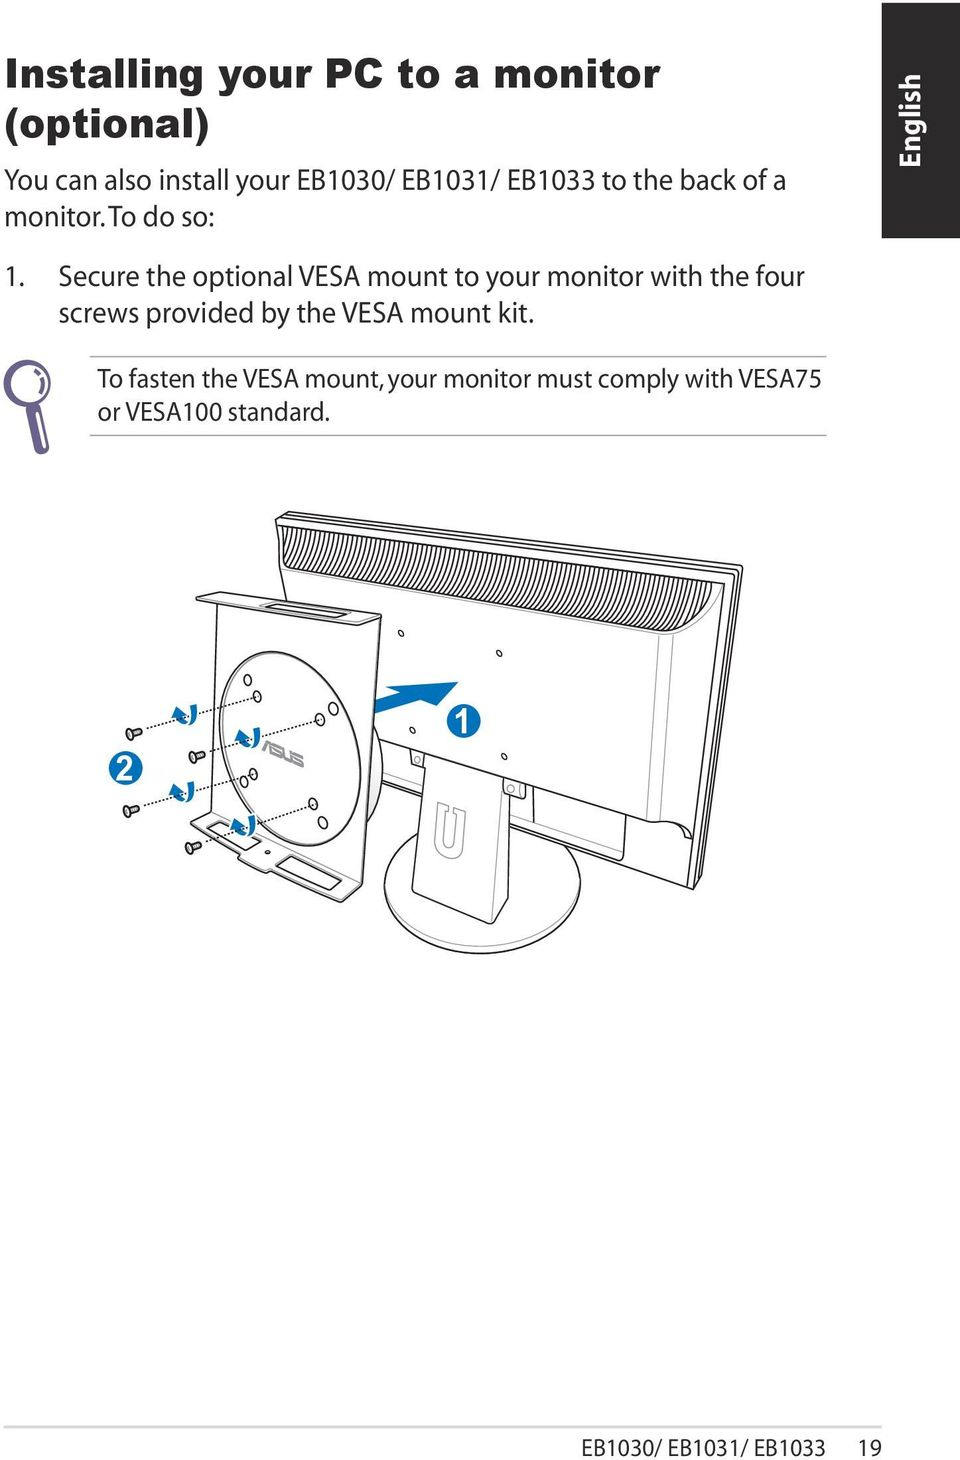 Secure the optional VESA mount to your monitor with the four screws provided by the